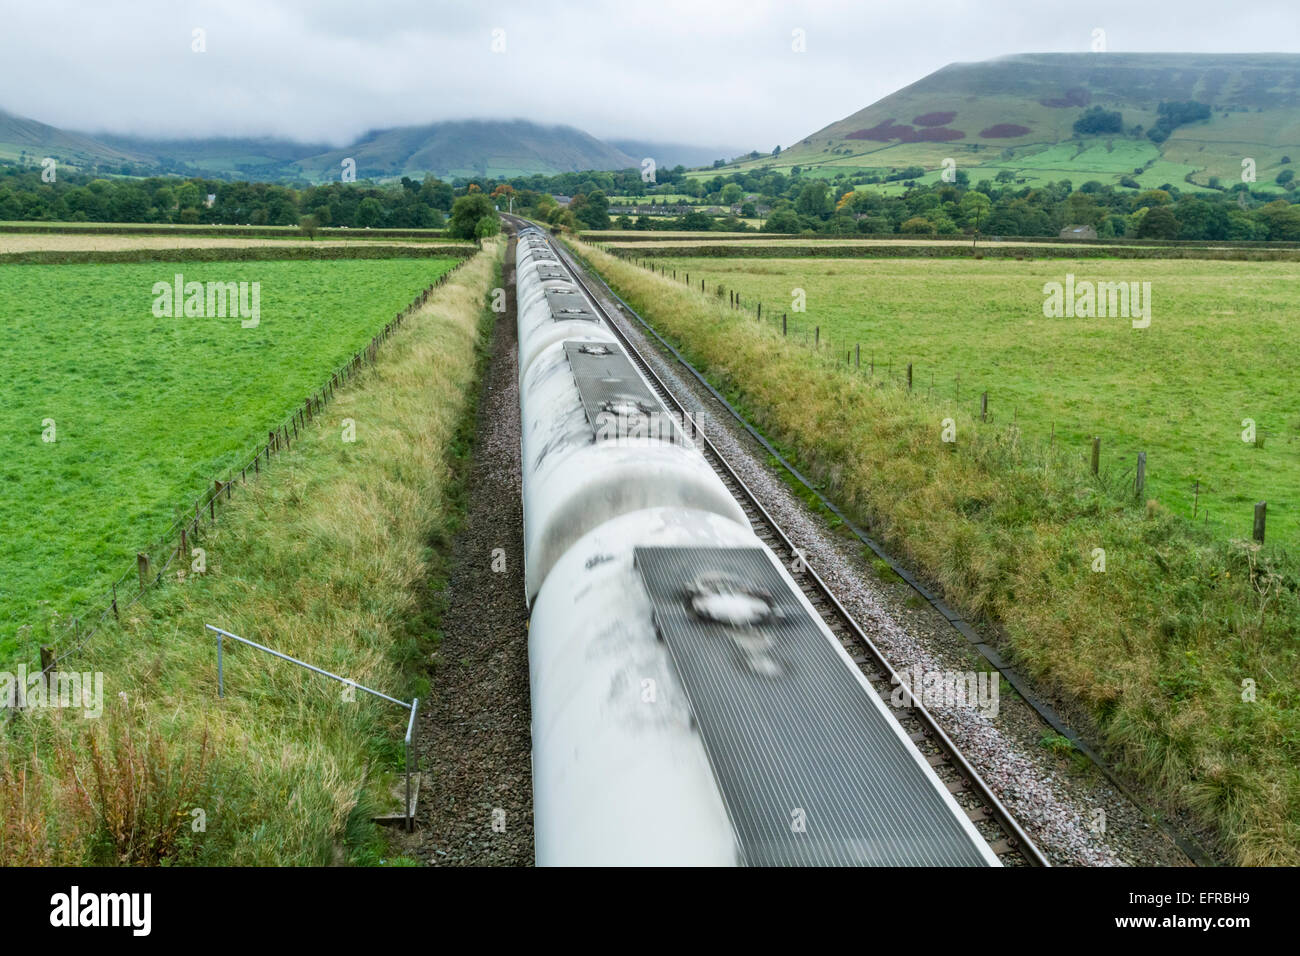 Freight train carrying cement passing through the countryside in Derbyshire, Peak District National Park, England, - Stock Image